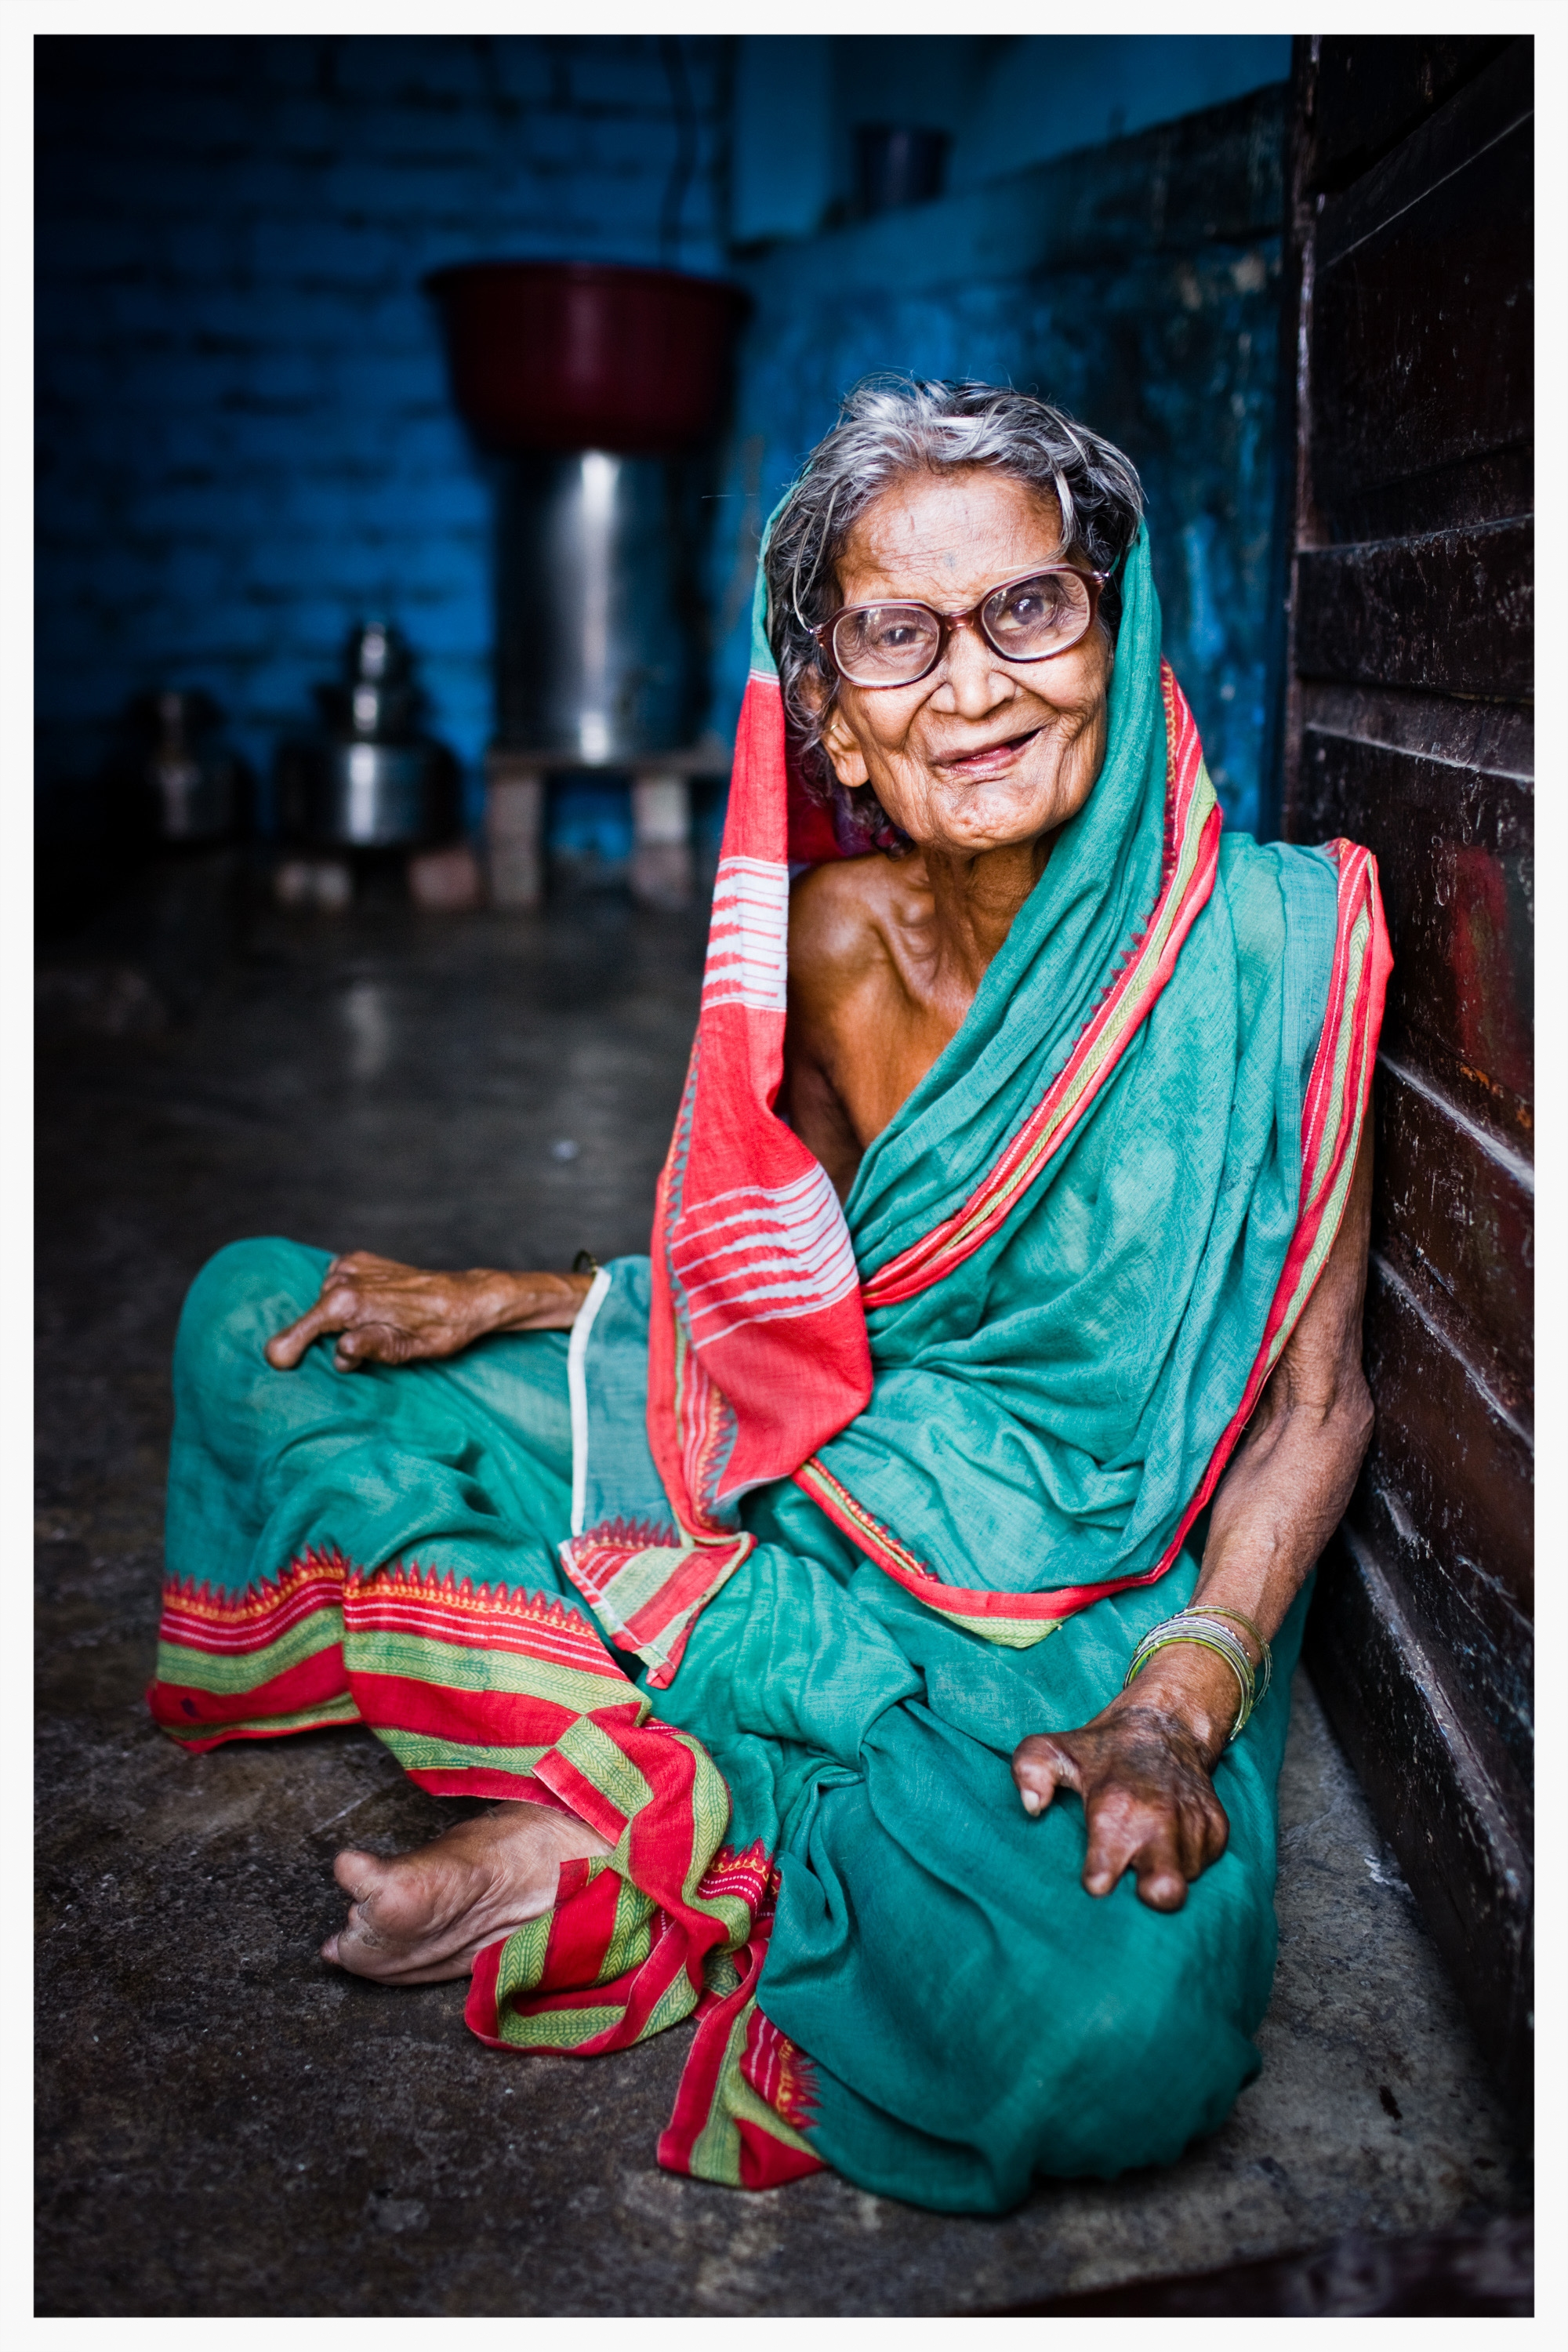 Devamma has lived with leprosy for more than 40 years. Being Untouchable, Indian Dalits. Photo: © Marcus Perkins